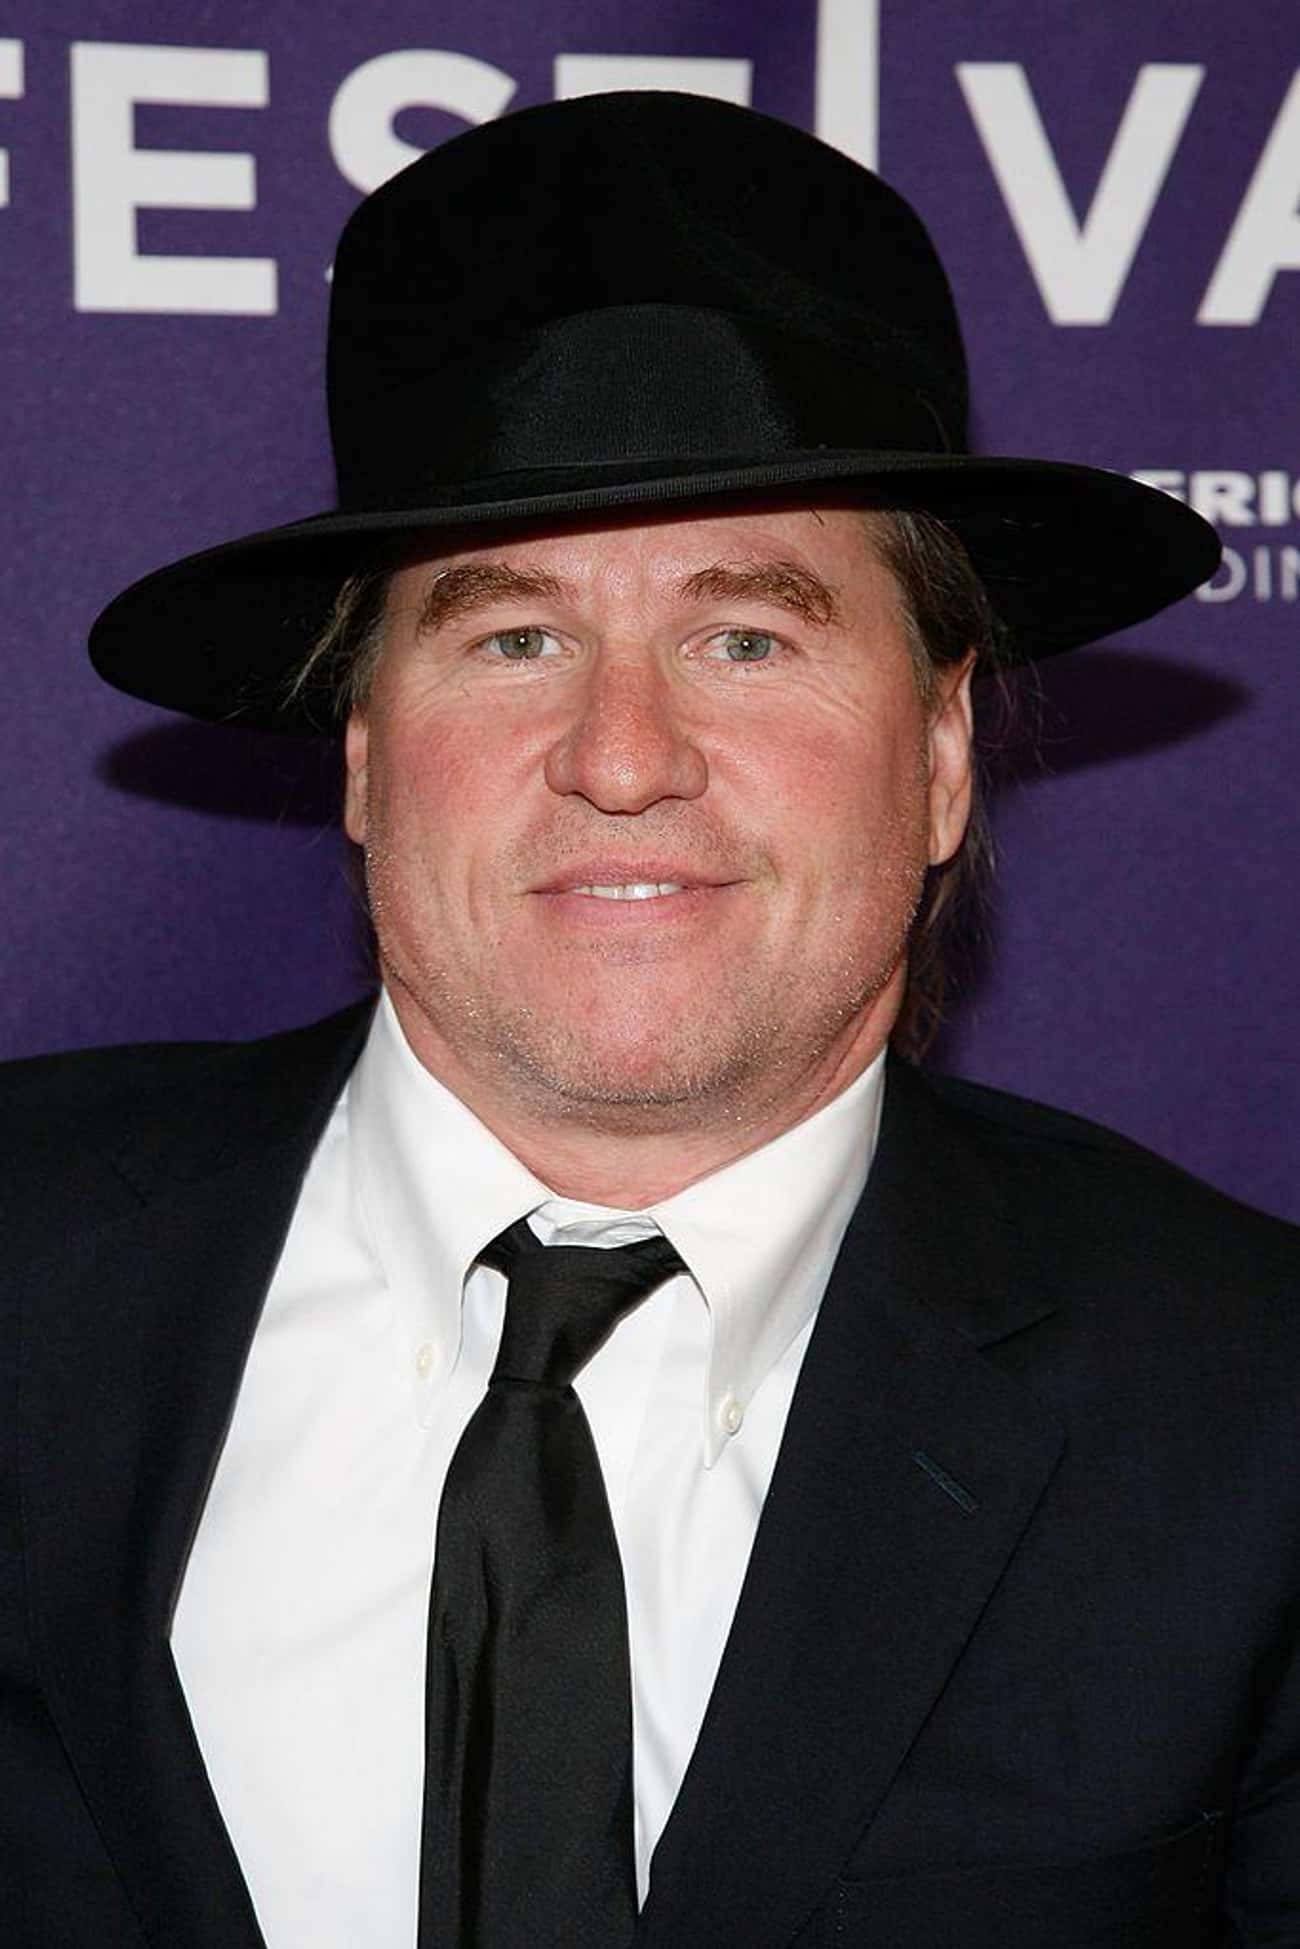 Val Kilmer, 2012 is listed (or ranked) 2 on the list Famous People Who Gained Weight